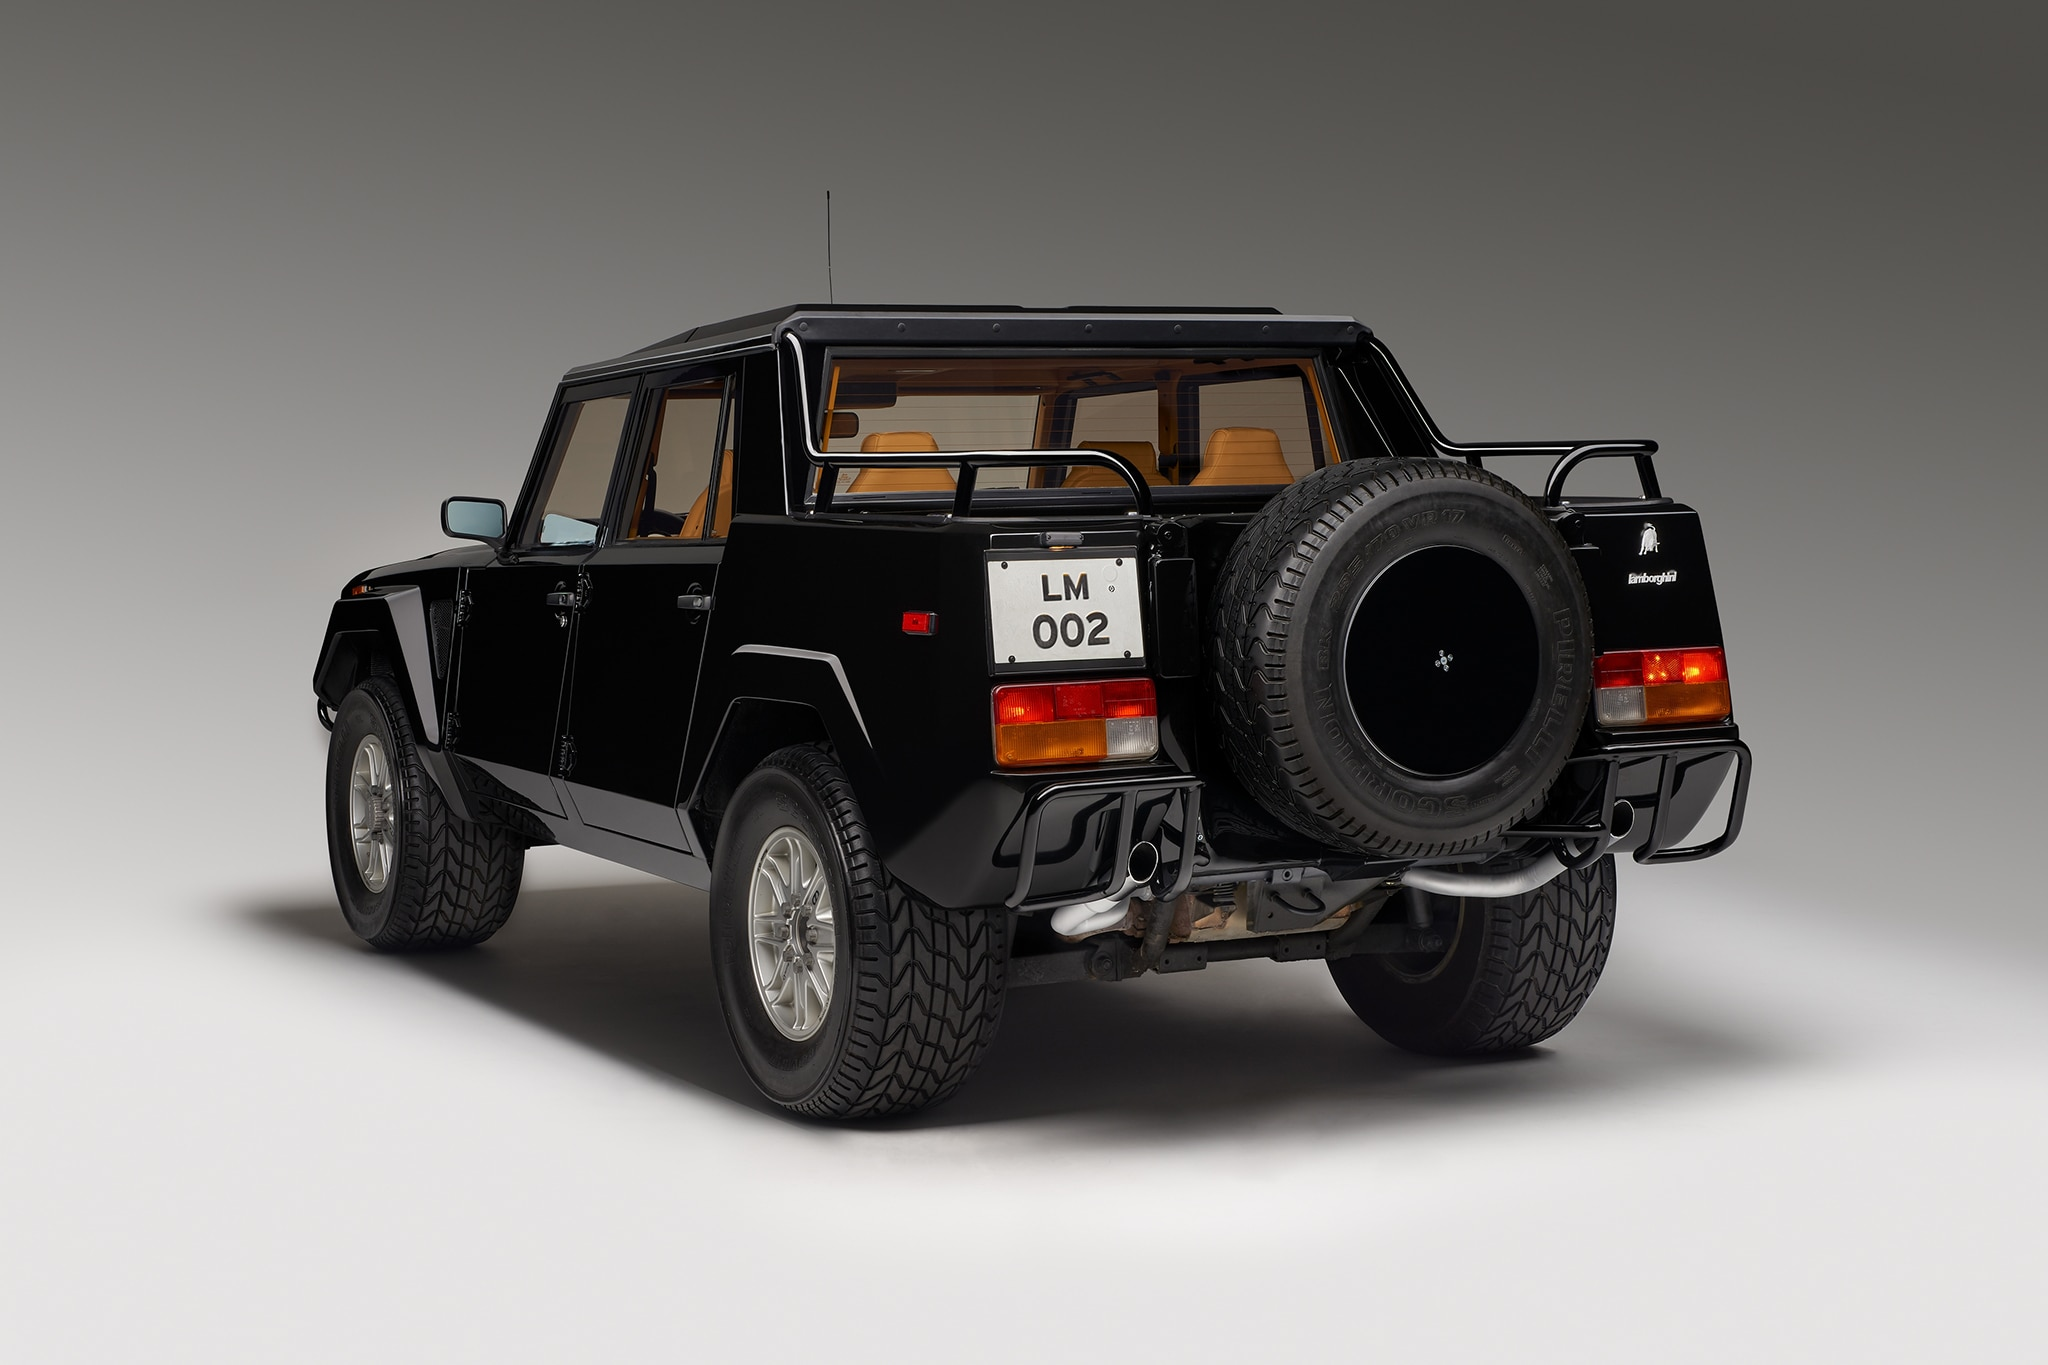 1986-1993 Lamborghini LM002 - Luxury SUV Review - Automobile Magazine